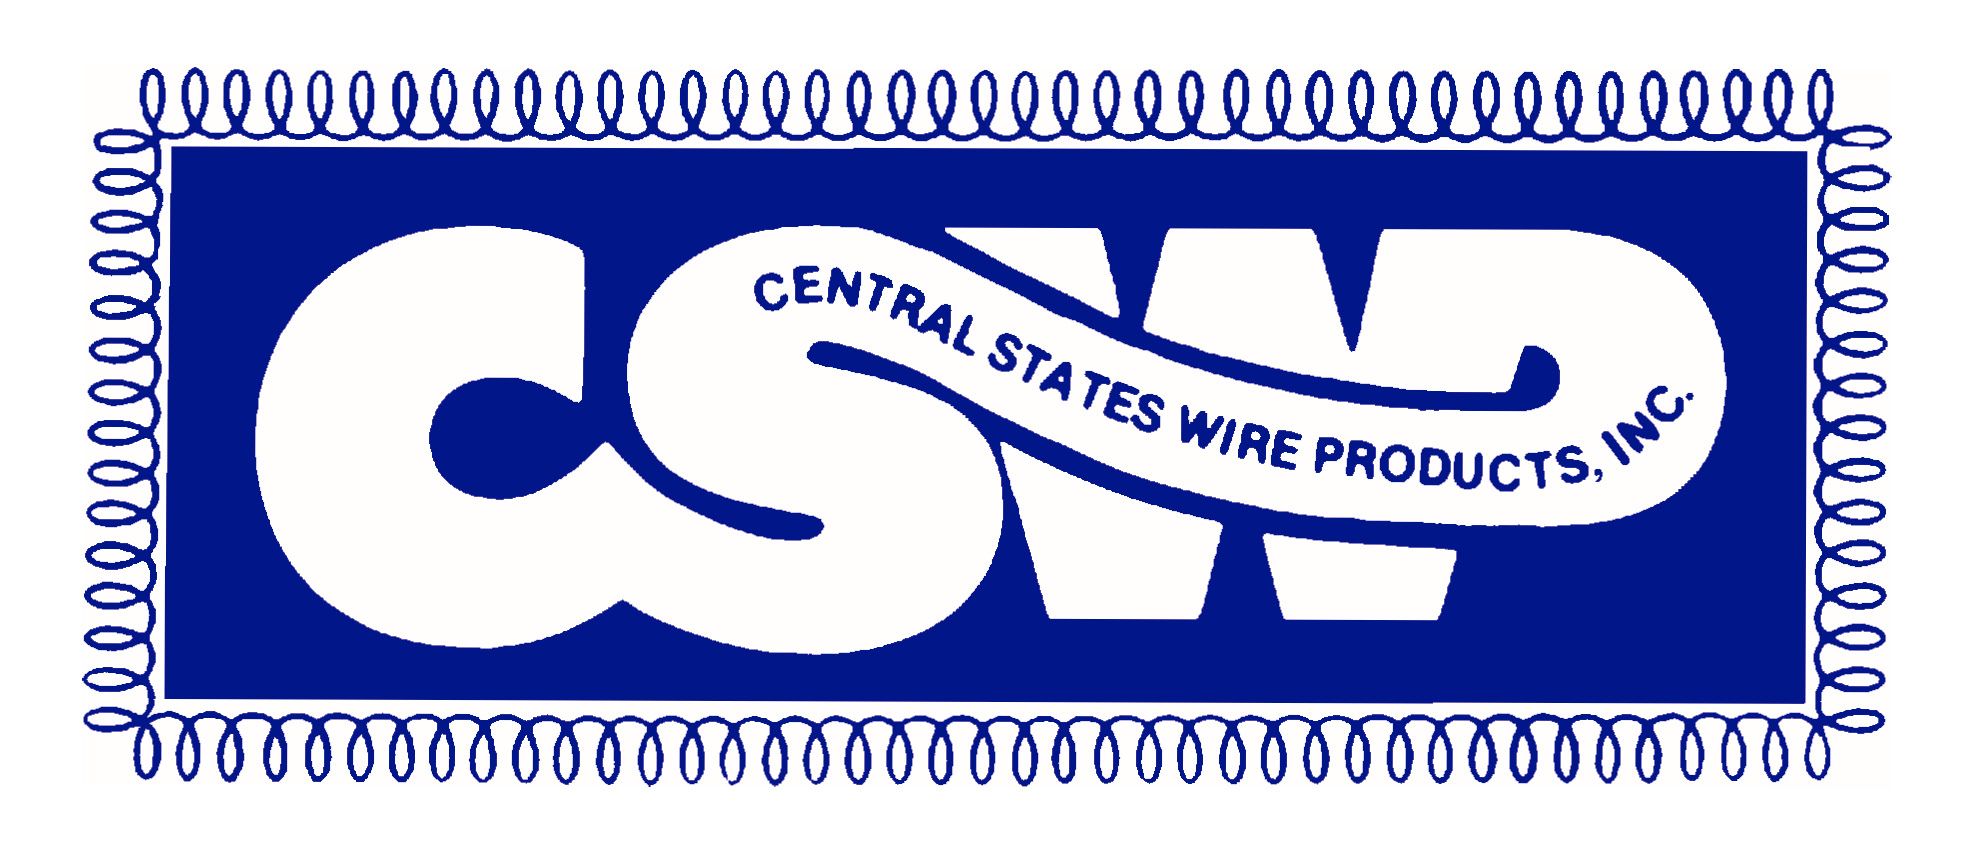 Central States Wire Products